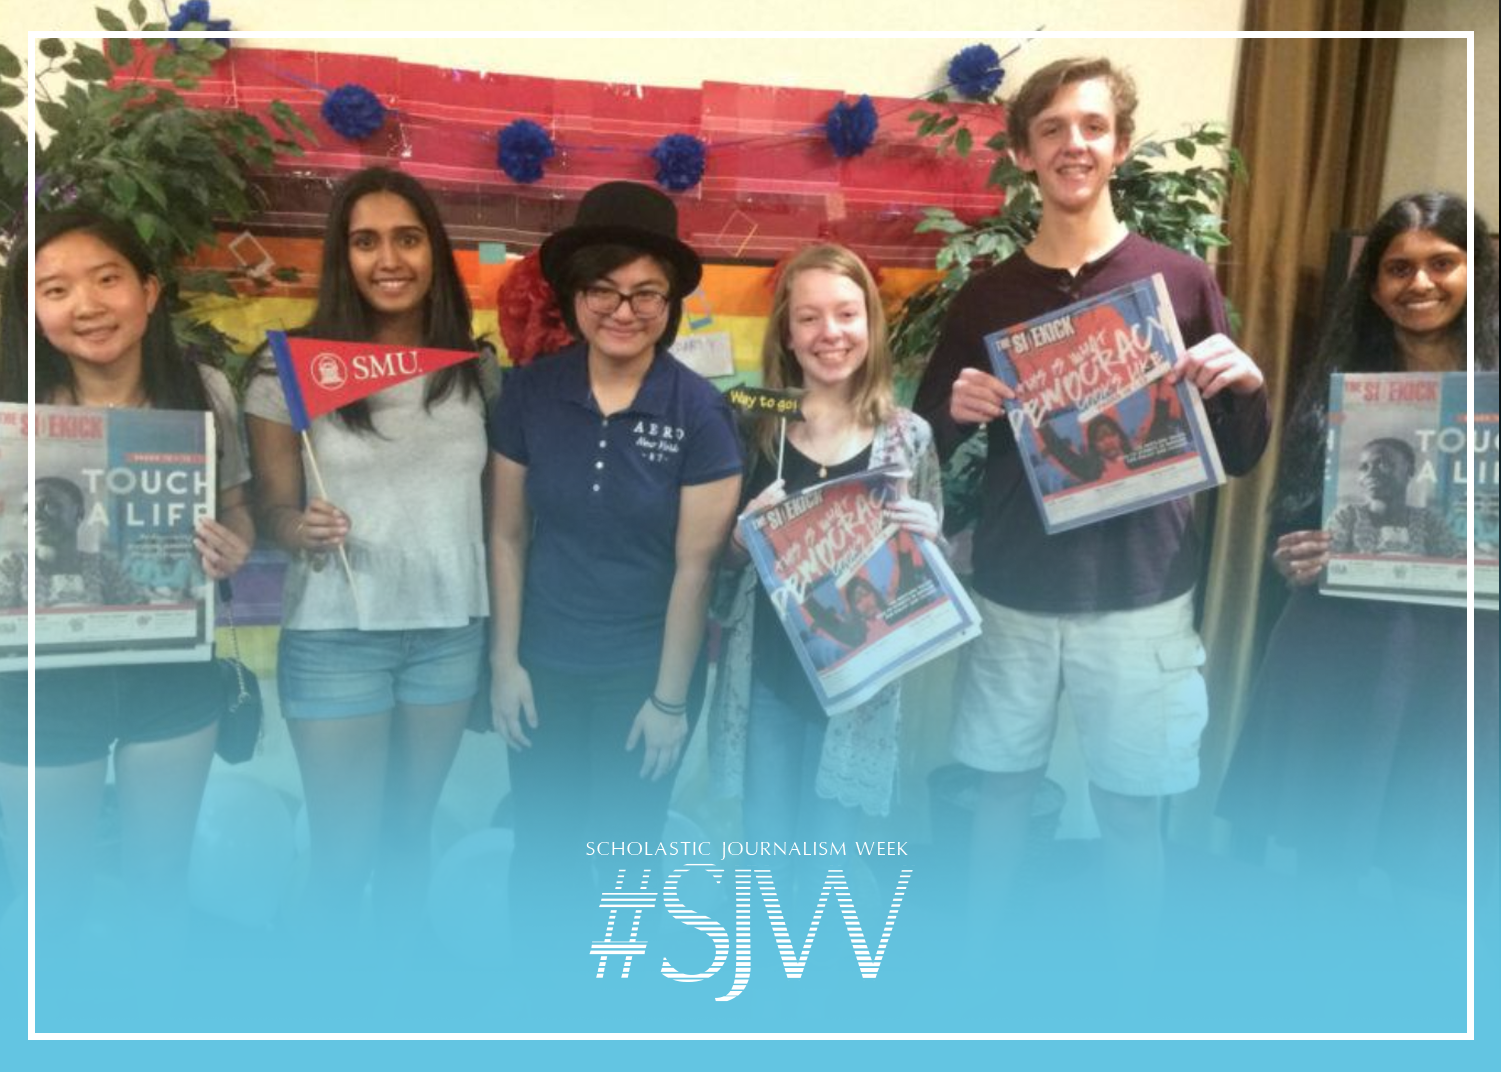 Former Sidekick editors Gracie Blackwell, Fiona Koshy and Wren Lee stand with current Sidekick editors Claire Clements, Nicholas Pranske and Pramika Kadari at Lee's 2018 graduation party. According to Kadari, joining the Sidekick staff has helped her realize how increasing work ethic can lead to heightened passion.